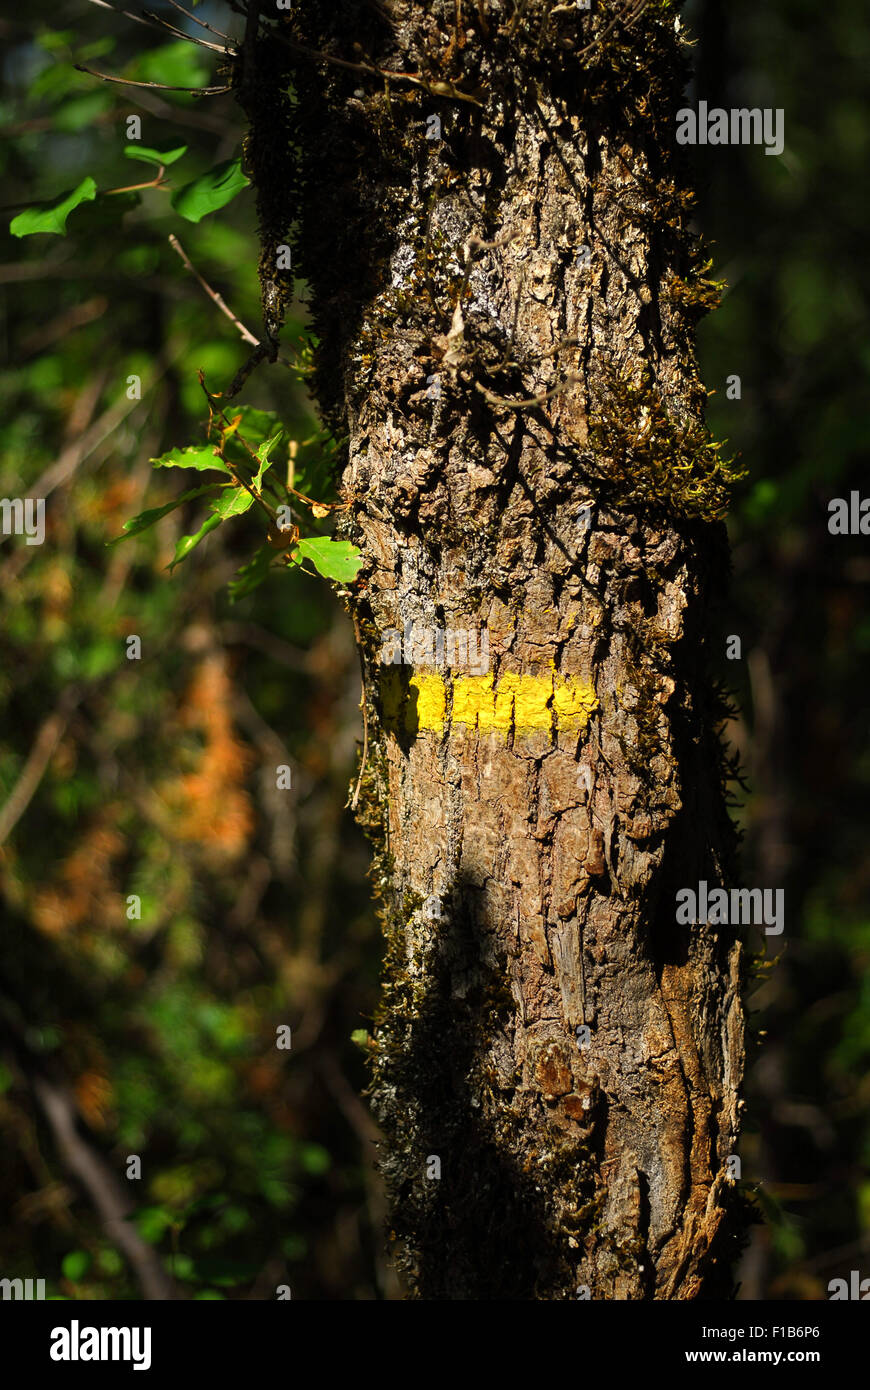 Yellow marker of Promenades et Randonnées (PRs) on tree trunk, Lot Valley - Stock Image